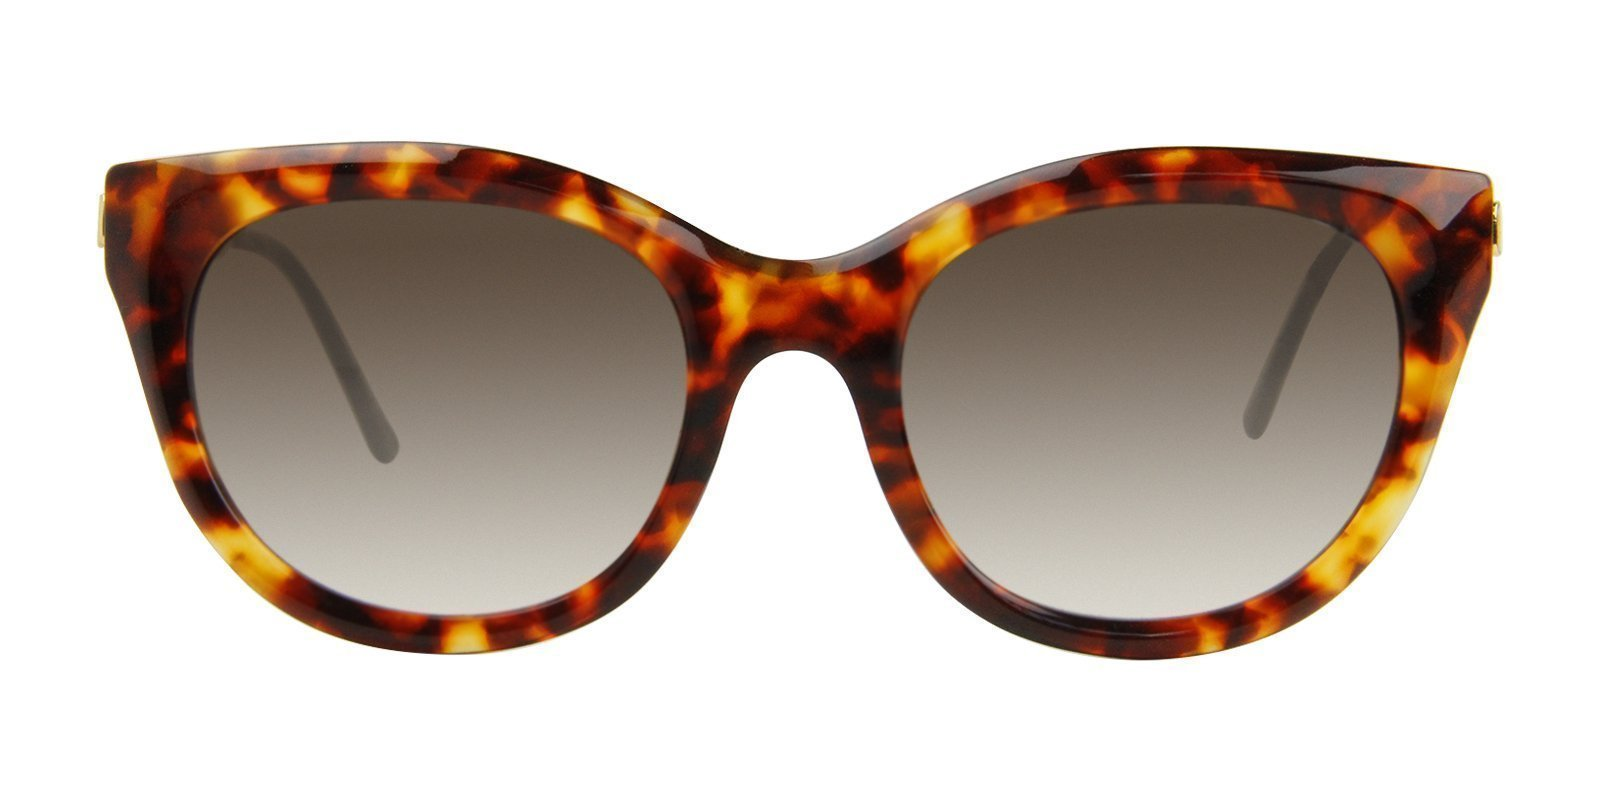 Thierry Lasry - DirtyMindy Tortoise Cat-Eye Women Sunglasses - 56mm-Sunglasses-Designer Eyes